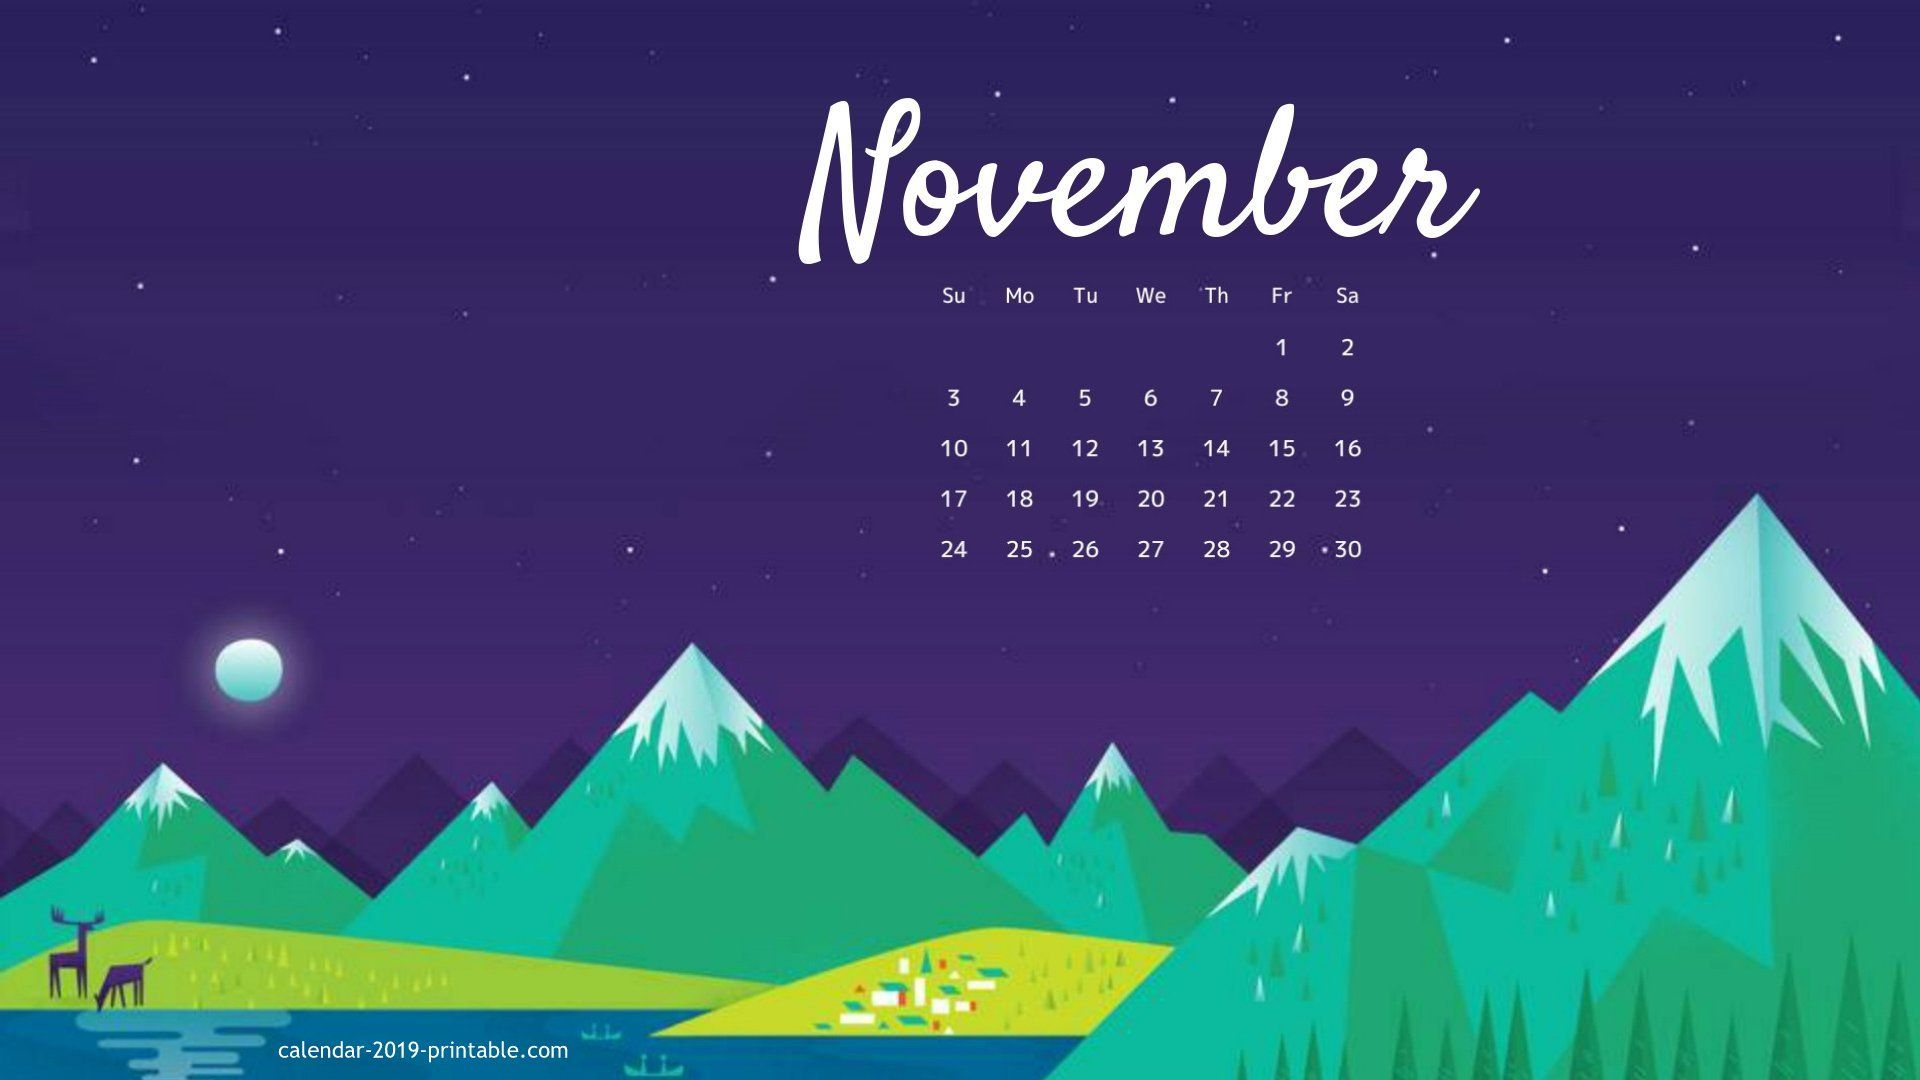 November 2019 Desktop Calendar Wallpaper